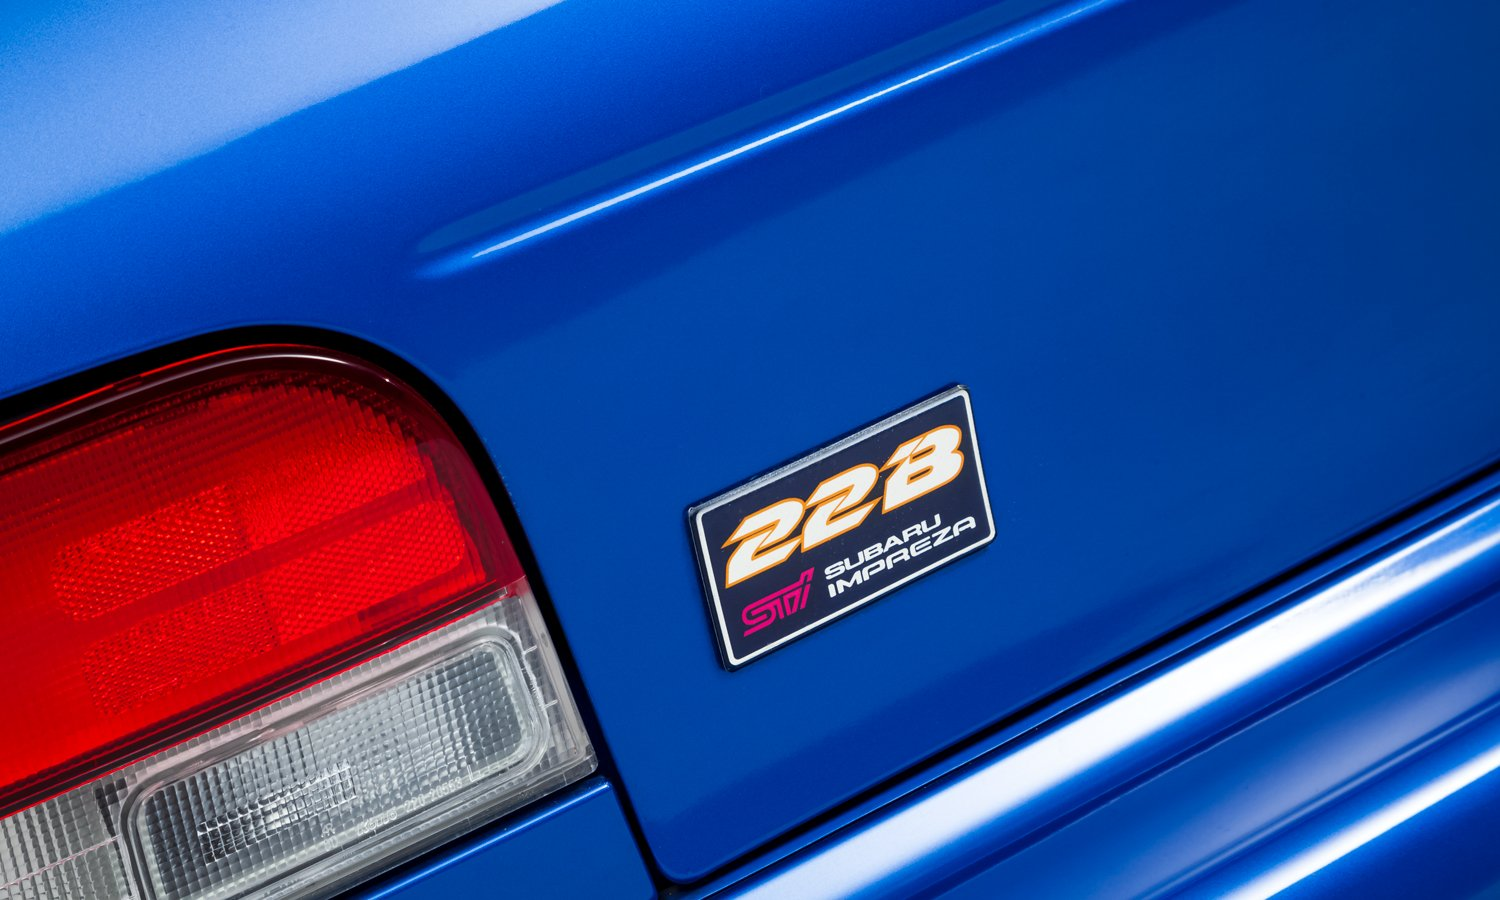 Subaru-Impreza-22B-STi-1998-for-sale-11